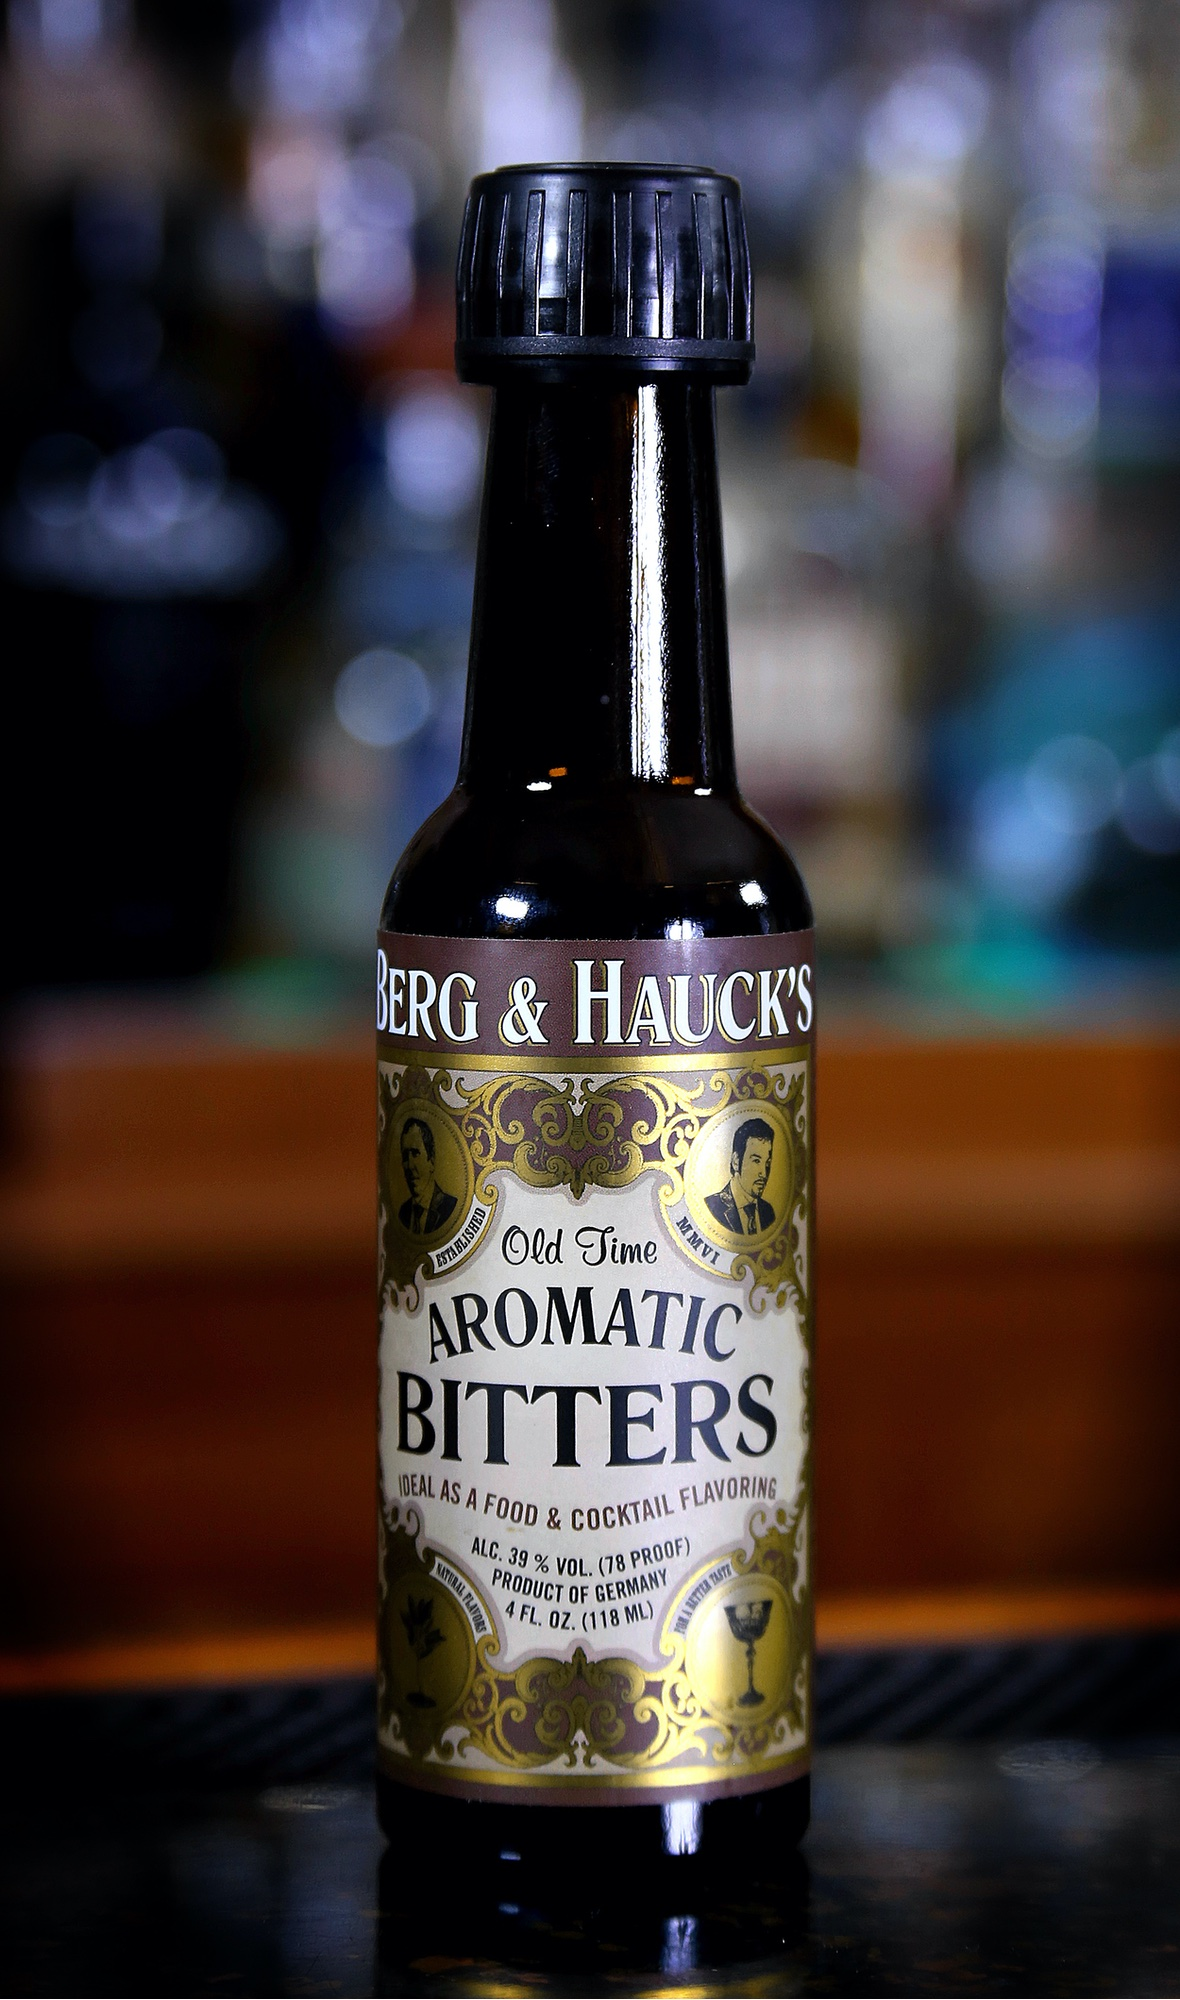 Berg & Hauck Old Time Aromatic Bitters